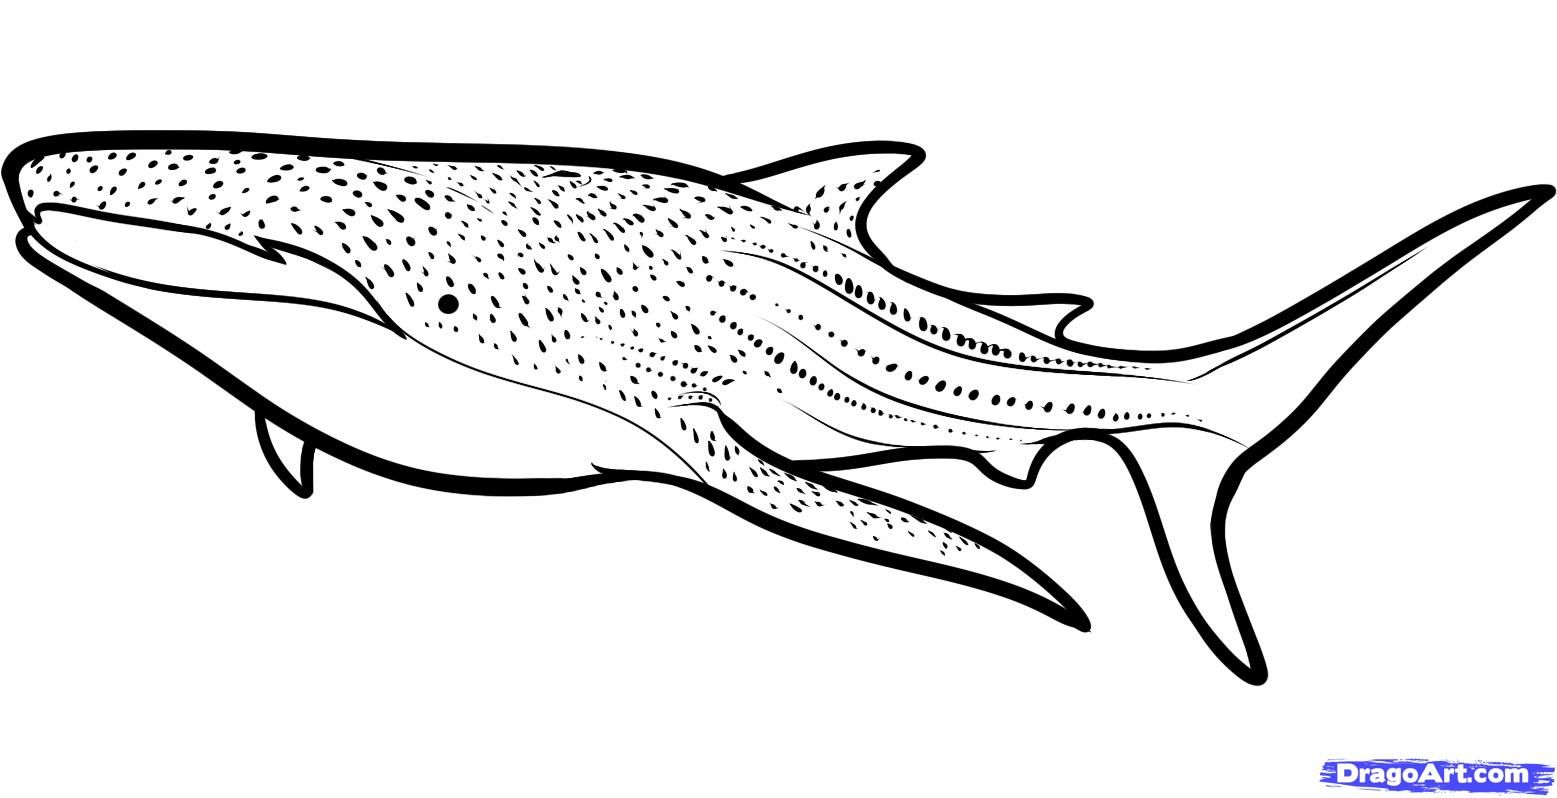 How To Draw A Whale Shark Whale Shark Step 6 1 000000089579 5 Jpg 1557 798 Shark Coloring Pages Whale Shark Whale Coloring Pages